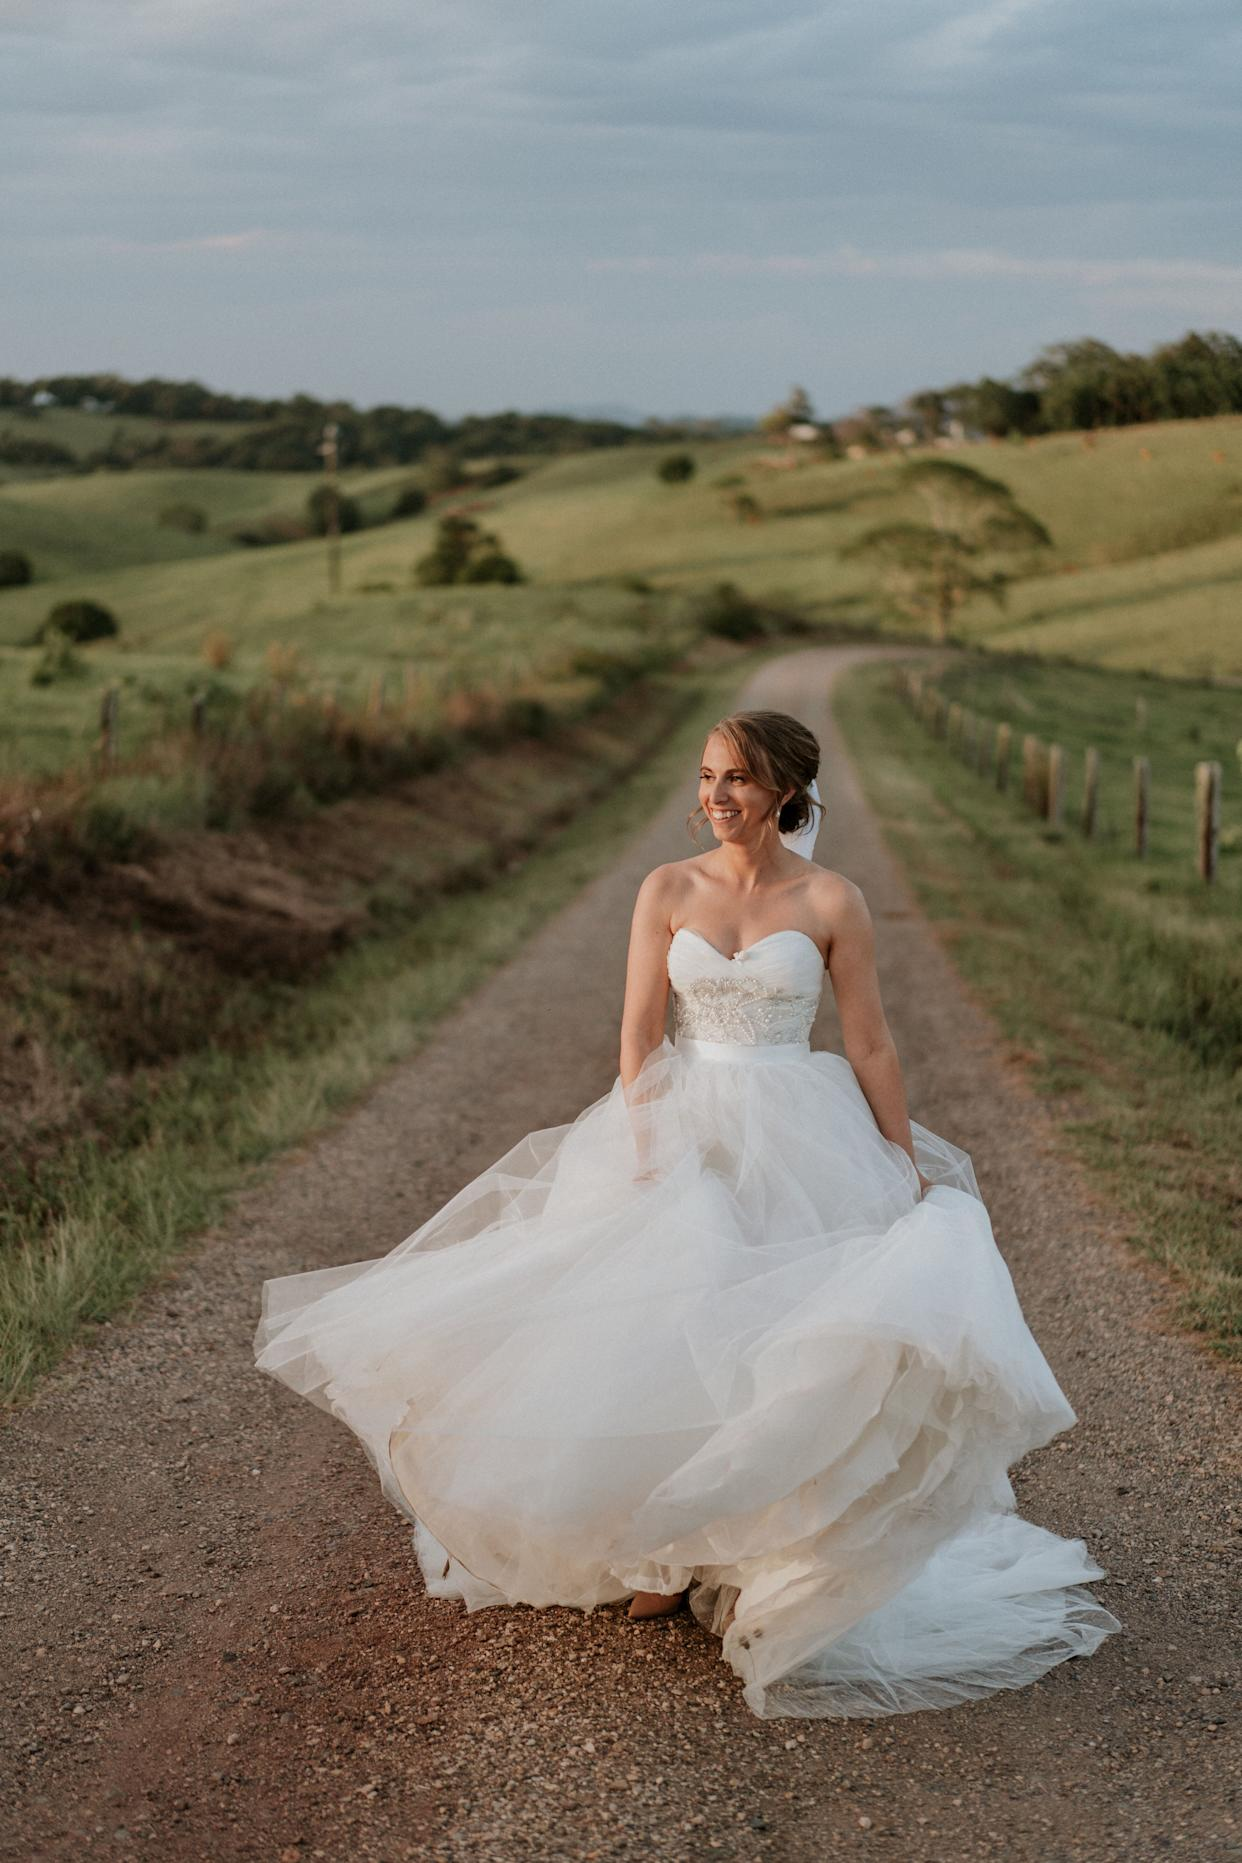 """The bride, standing on a dirt road between green rolling hills, smiles as she plays with the skirt of her ball gown.&nbsp; (Photo: <a href=""""https://www.jamesday.com.au/"""" rel=""""nofollow noopener"""" target=""""_blank"""" data-ylk=""""slk:James Day Photography"""" class=""""link rapid-noclick-resp"""">James Day Photography</a>)"""